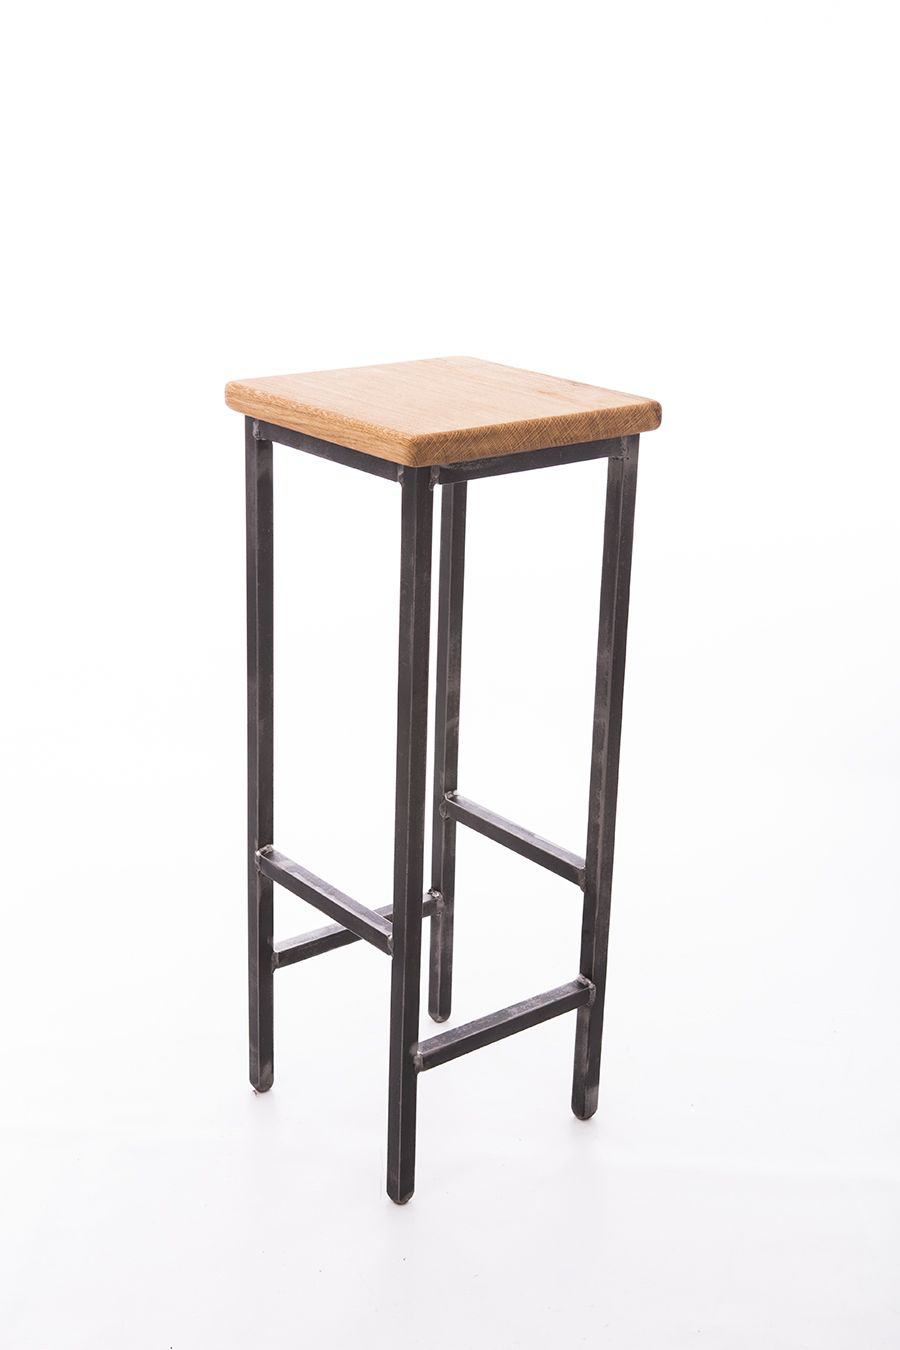 square solid clarke jcu low furniture stool product wood seat